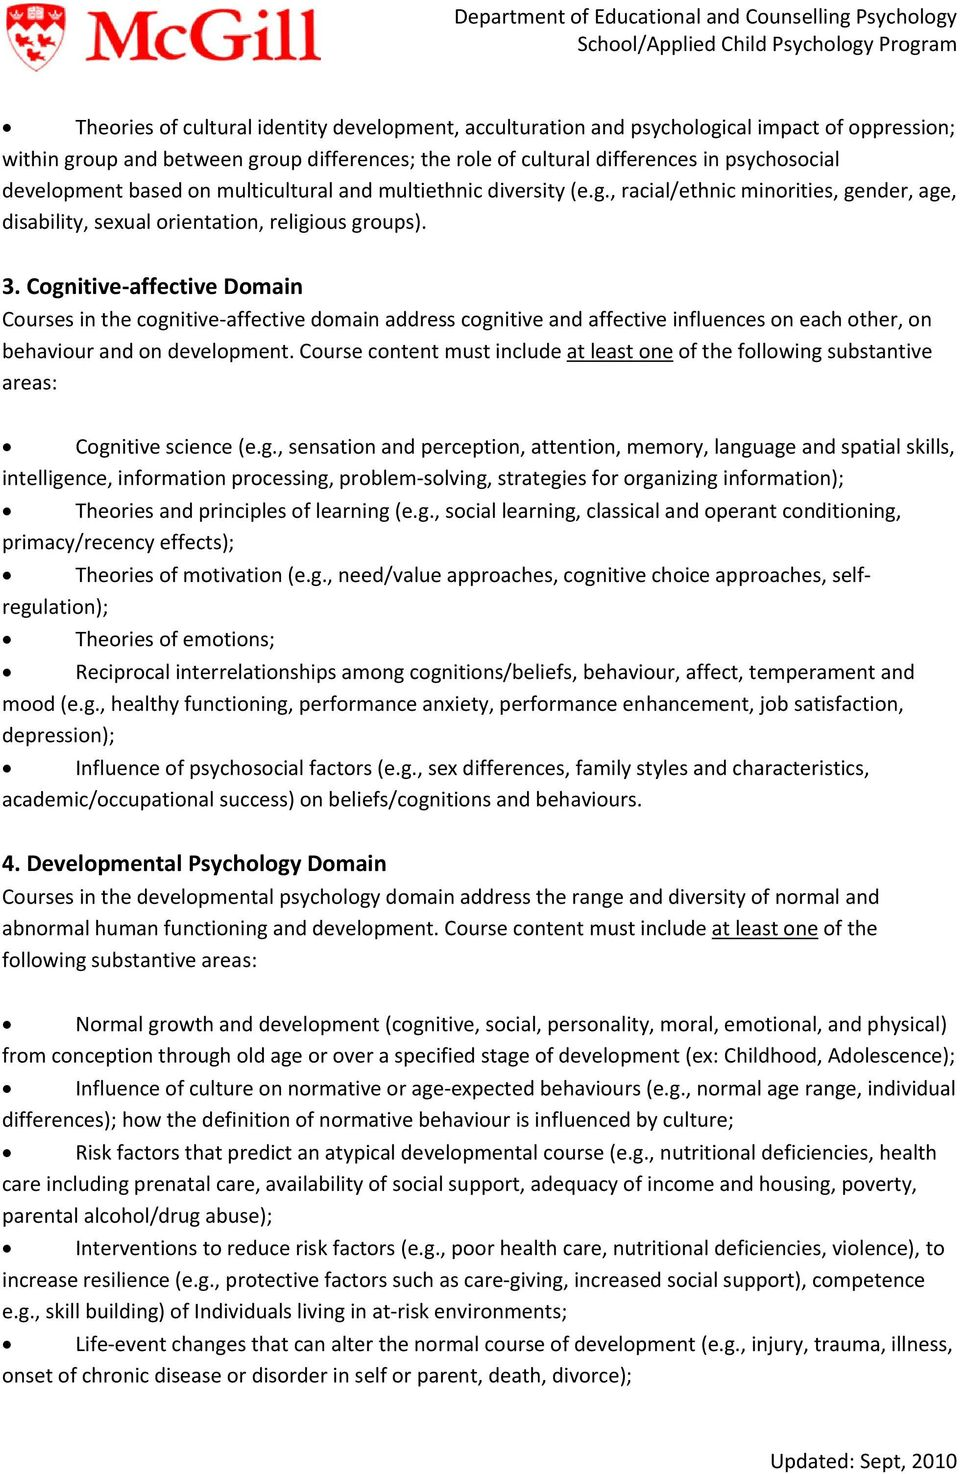 Cognitive affective Domain Courses in the cognitive affective domain address cognitive and affective influences on each other, on behaviour and on development.